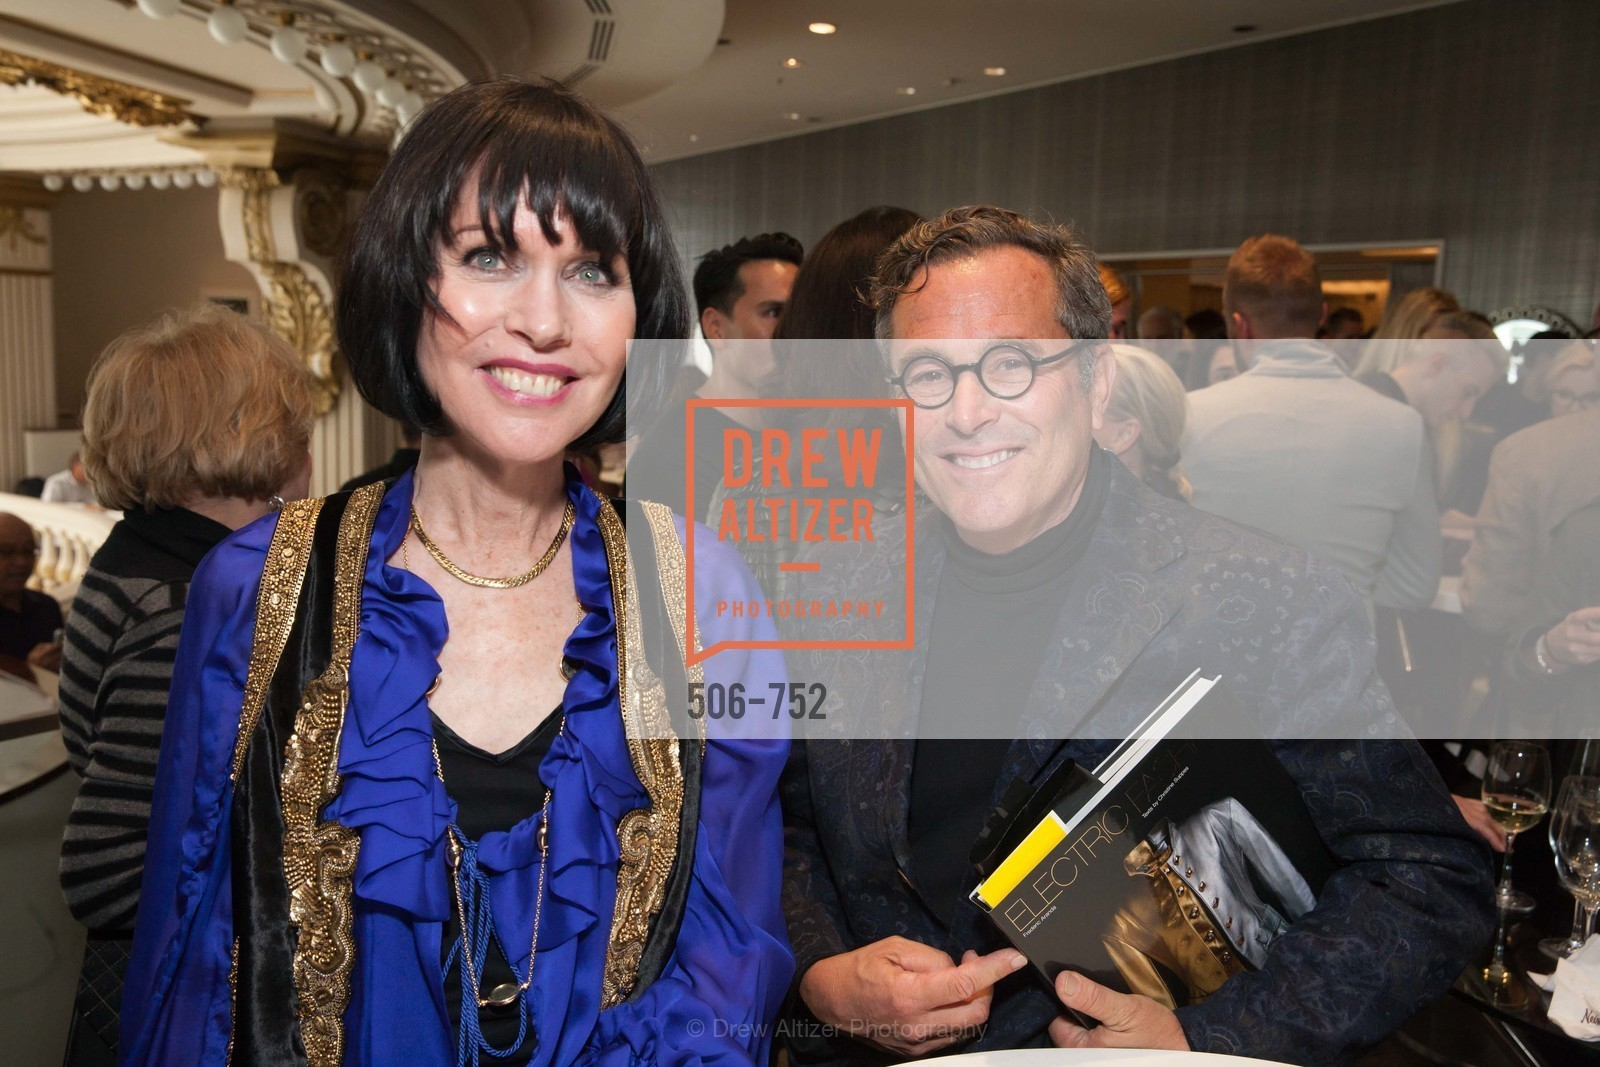 Christine Suppes, Ricky Serbin, Electric Fashion Book Signing with Christine Suppes & Ken Downing at THE ROTUNDA, NEIMAN MARCUS, US, May 27th, 2015,Drew Altizer, Drew Altizer Photography, full-service agency, private events, San Francisco photographer, photographer california